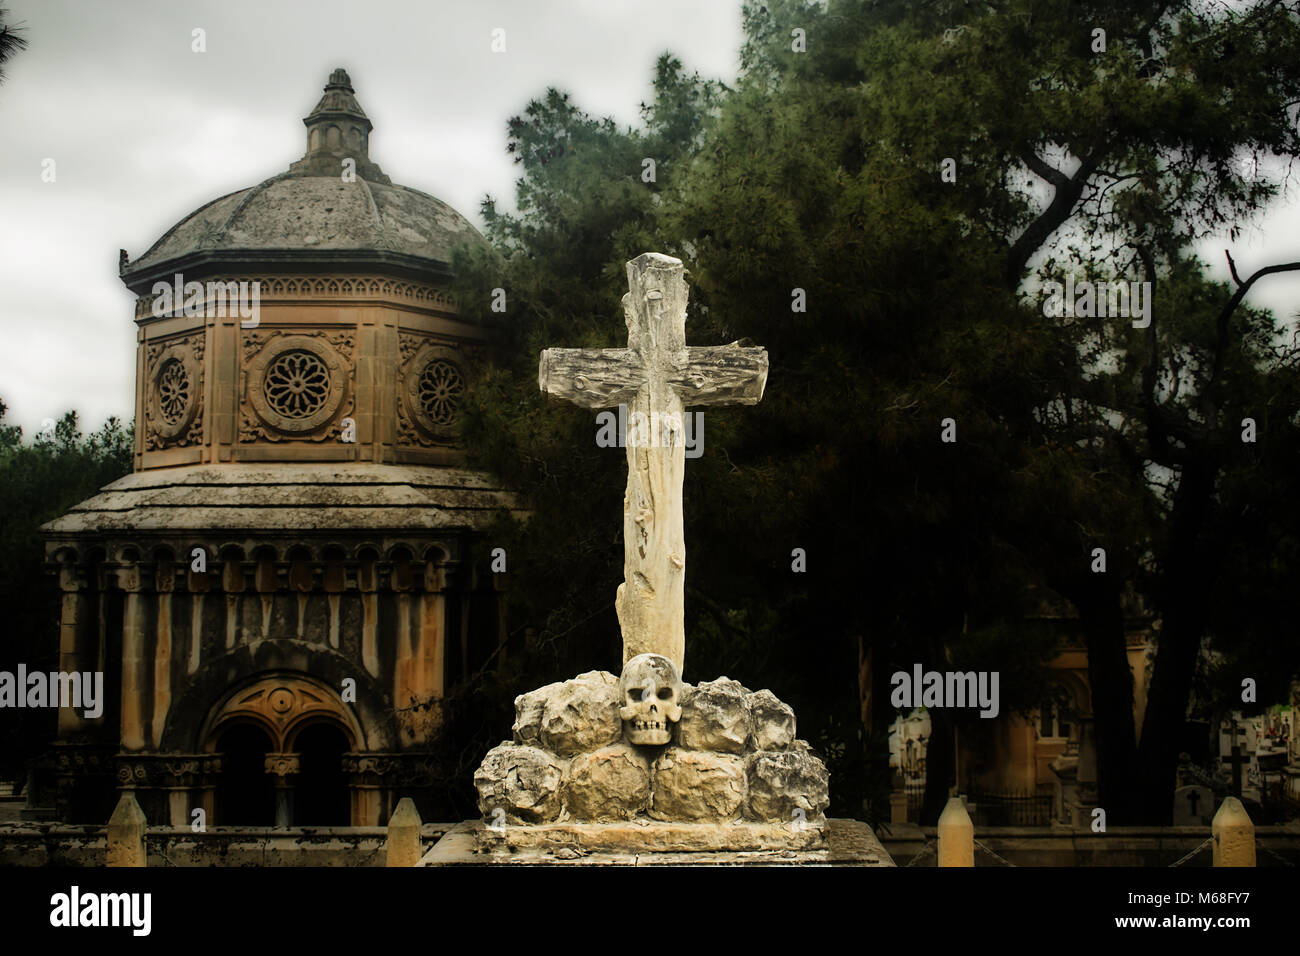 A wooden cross built on a skull with a cemetry in the background. Stock Photo